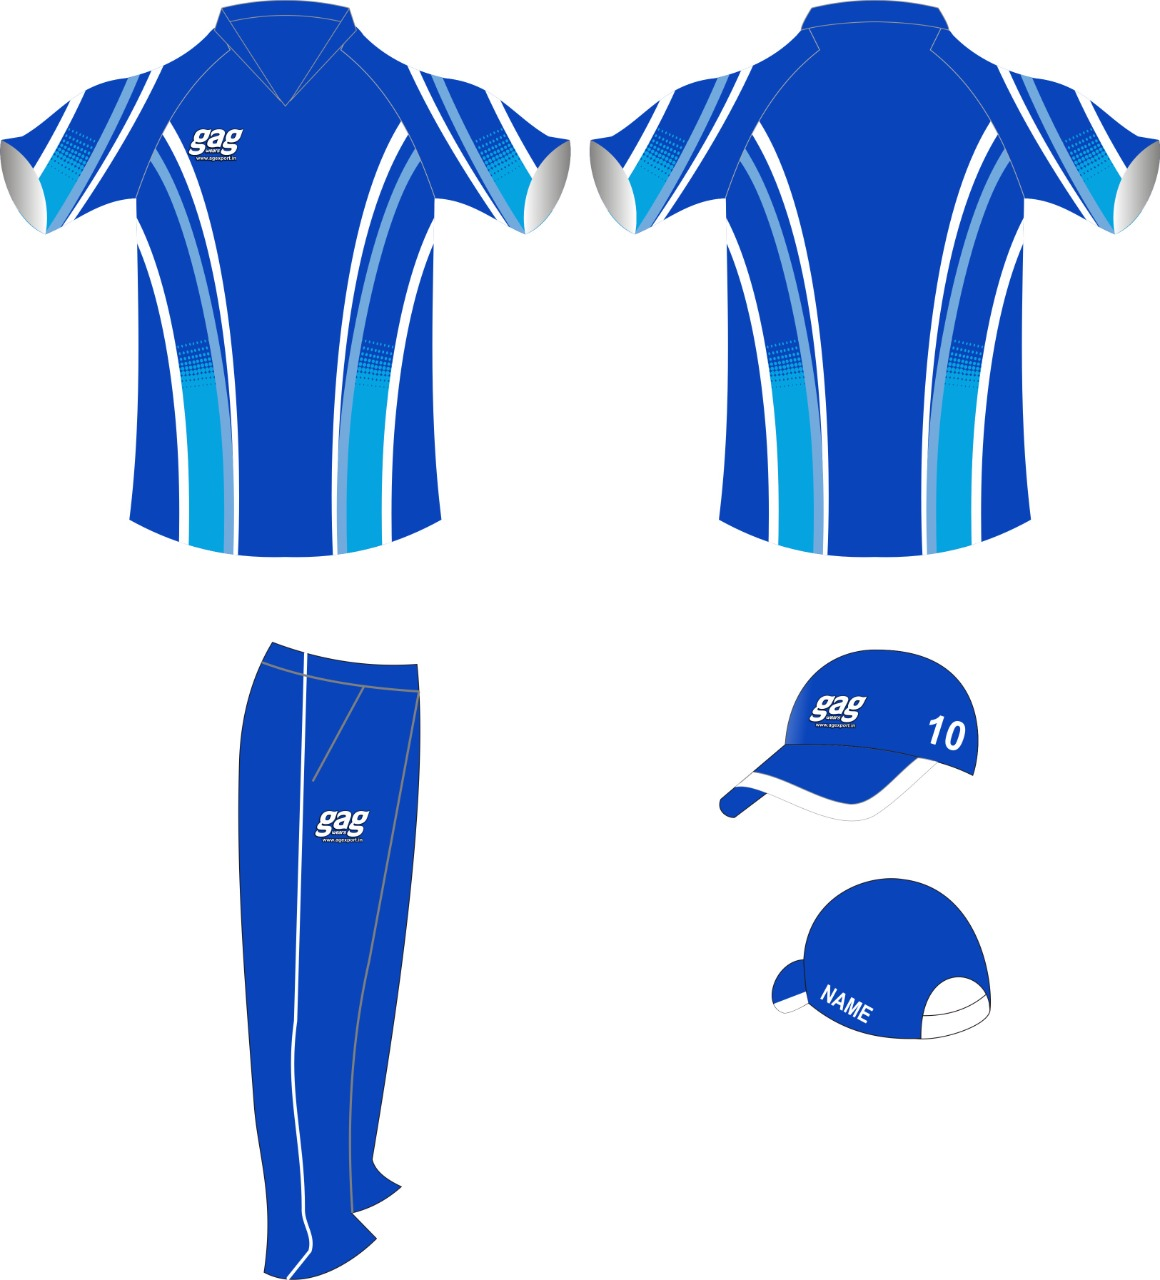 Cricket Shirts Manufacturers in Jalandhar in South Korea